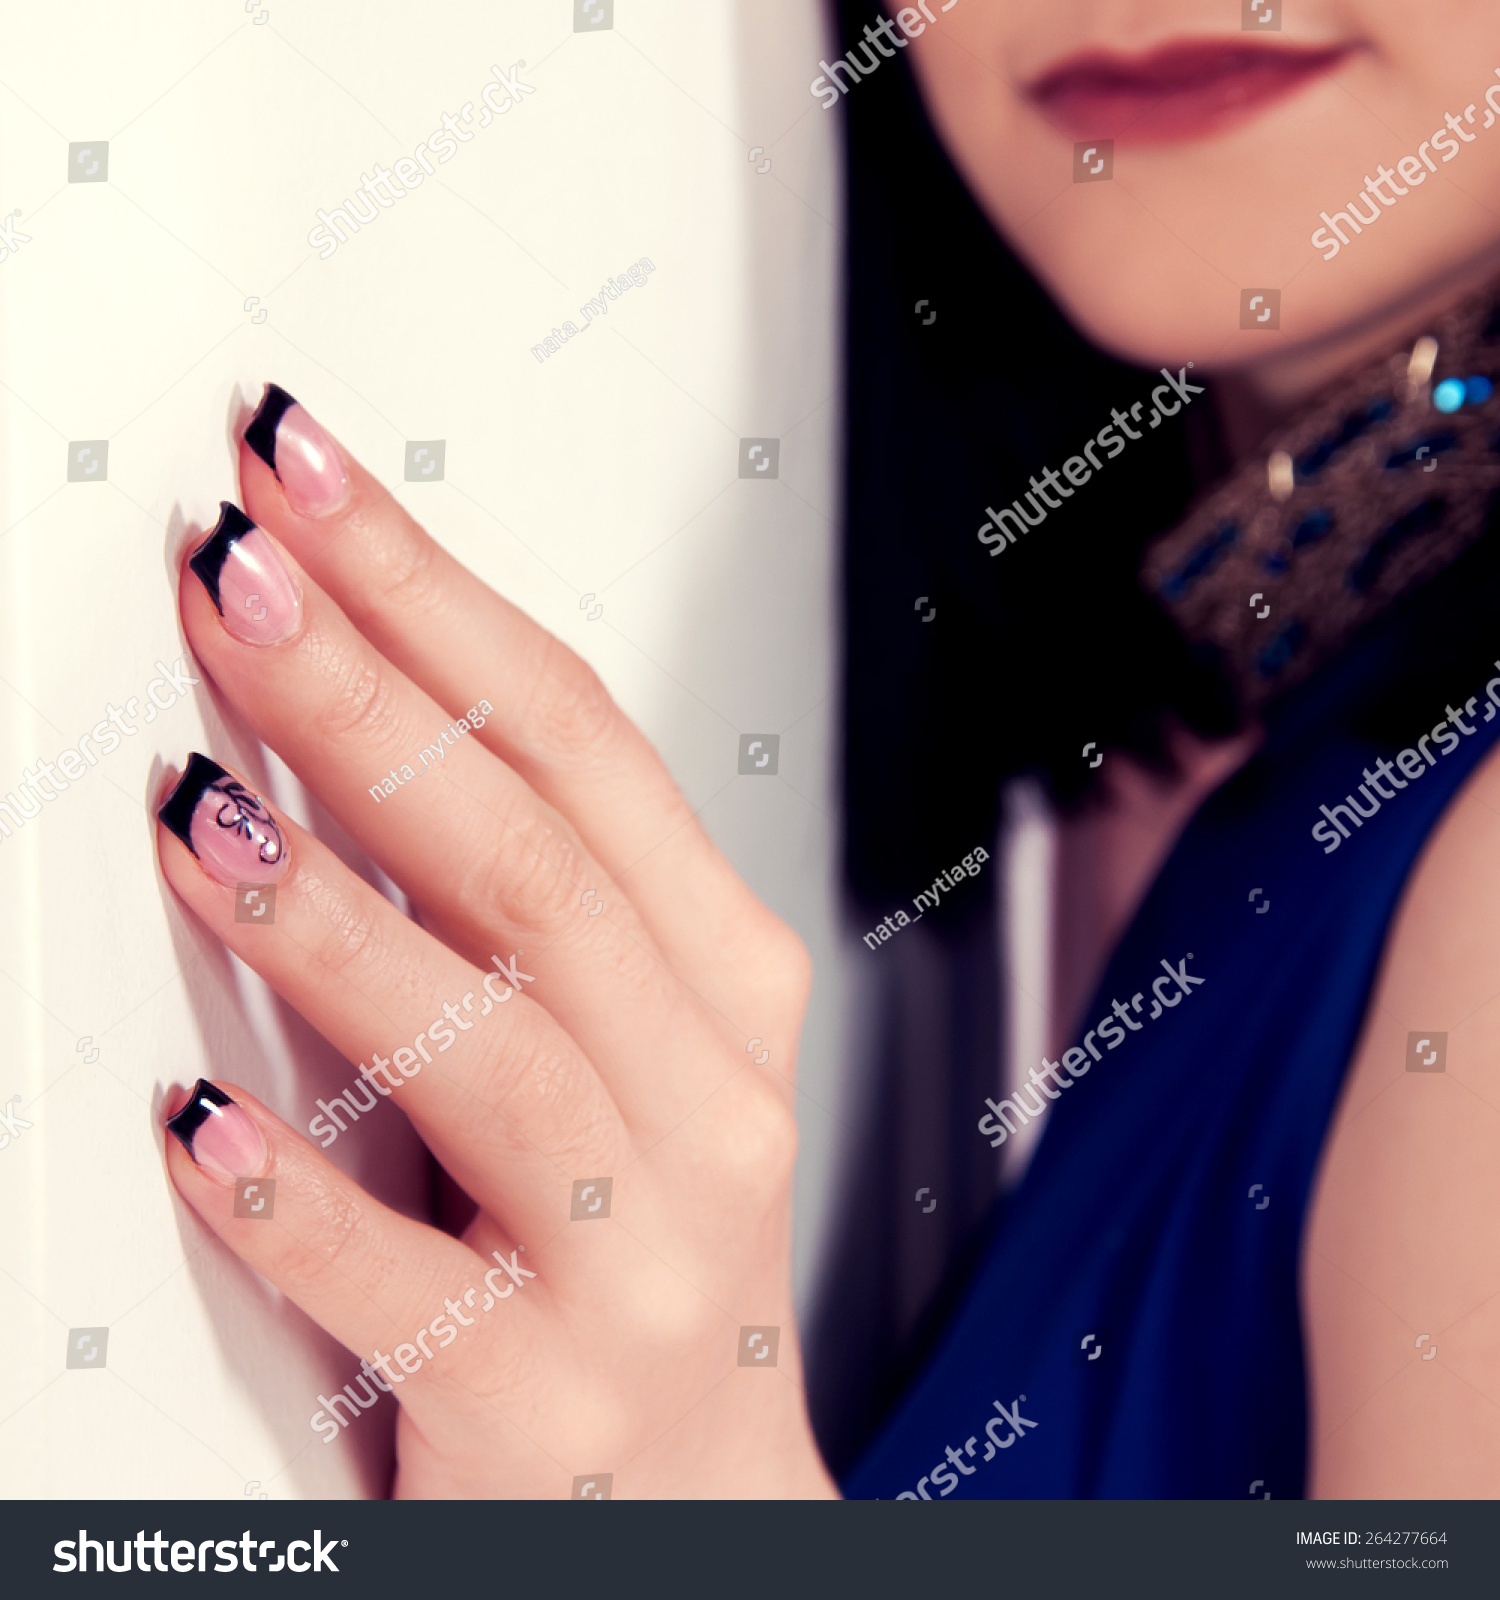 Nail Polish For Dark Hands: Woman'S Hand With Pink And Black Gel Nail Polish Stock